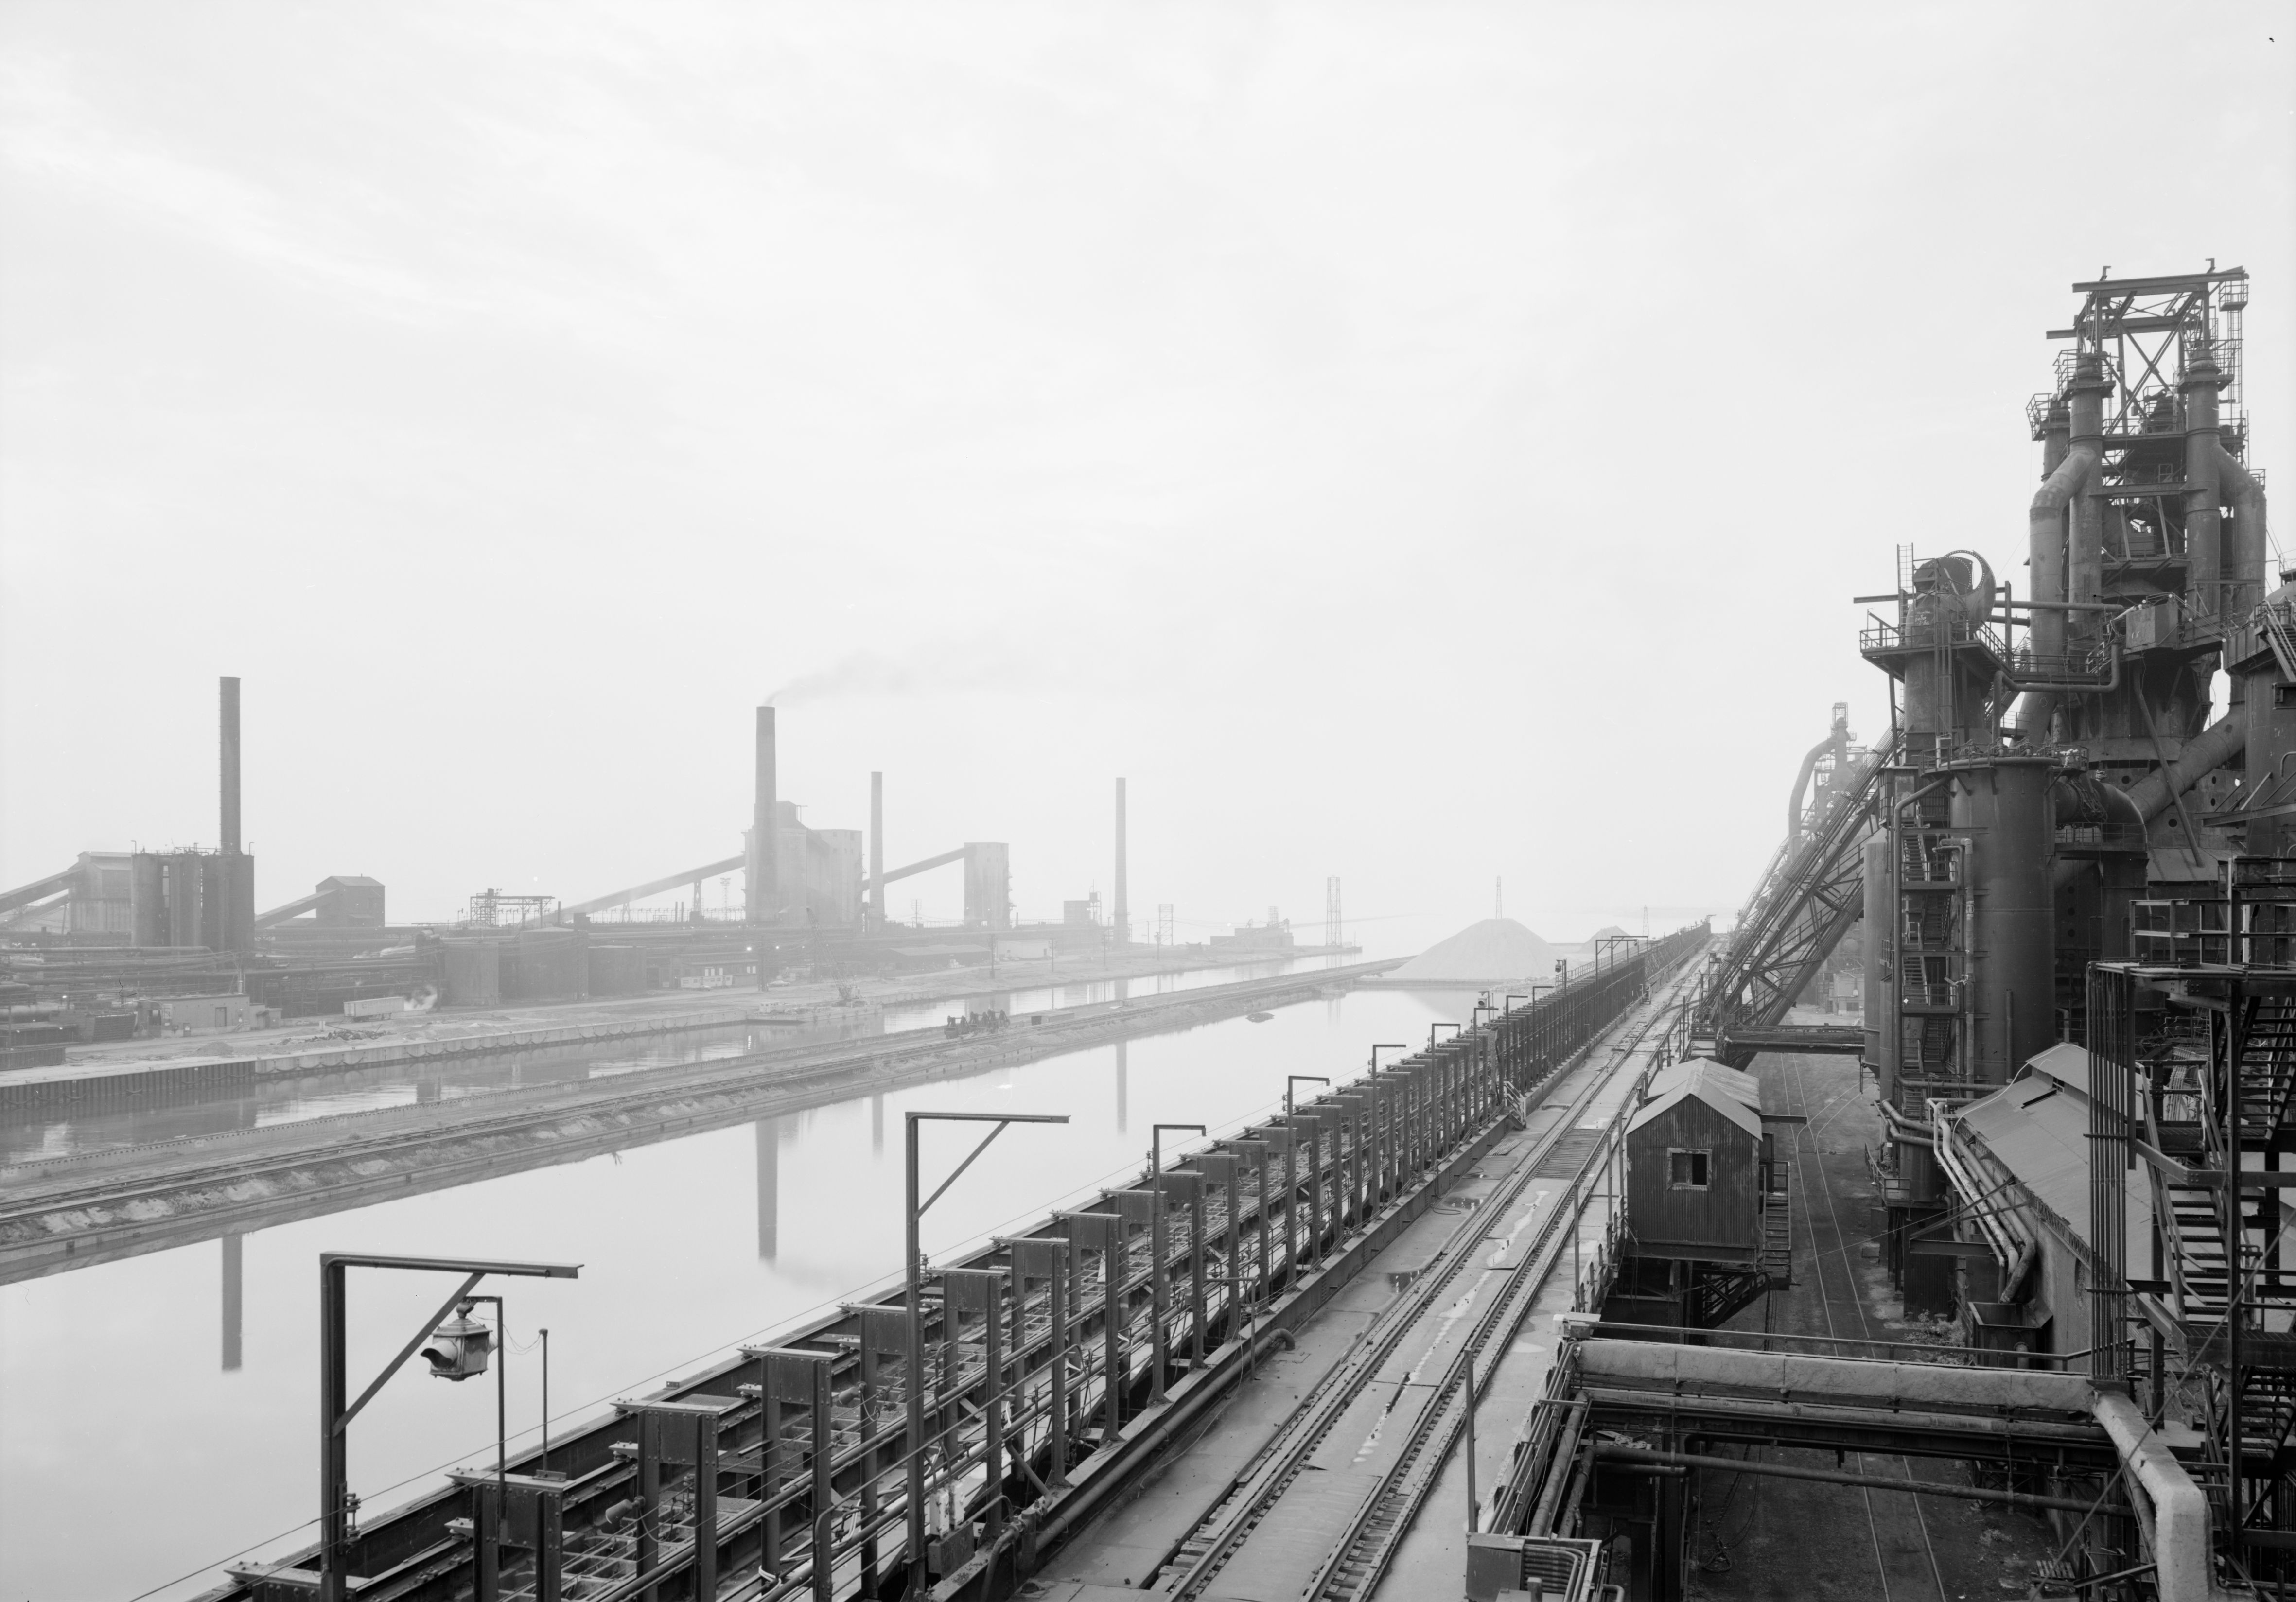 Description Lackawanna steel plant shipcanal.jpg